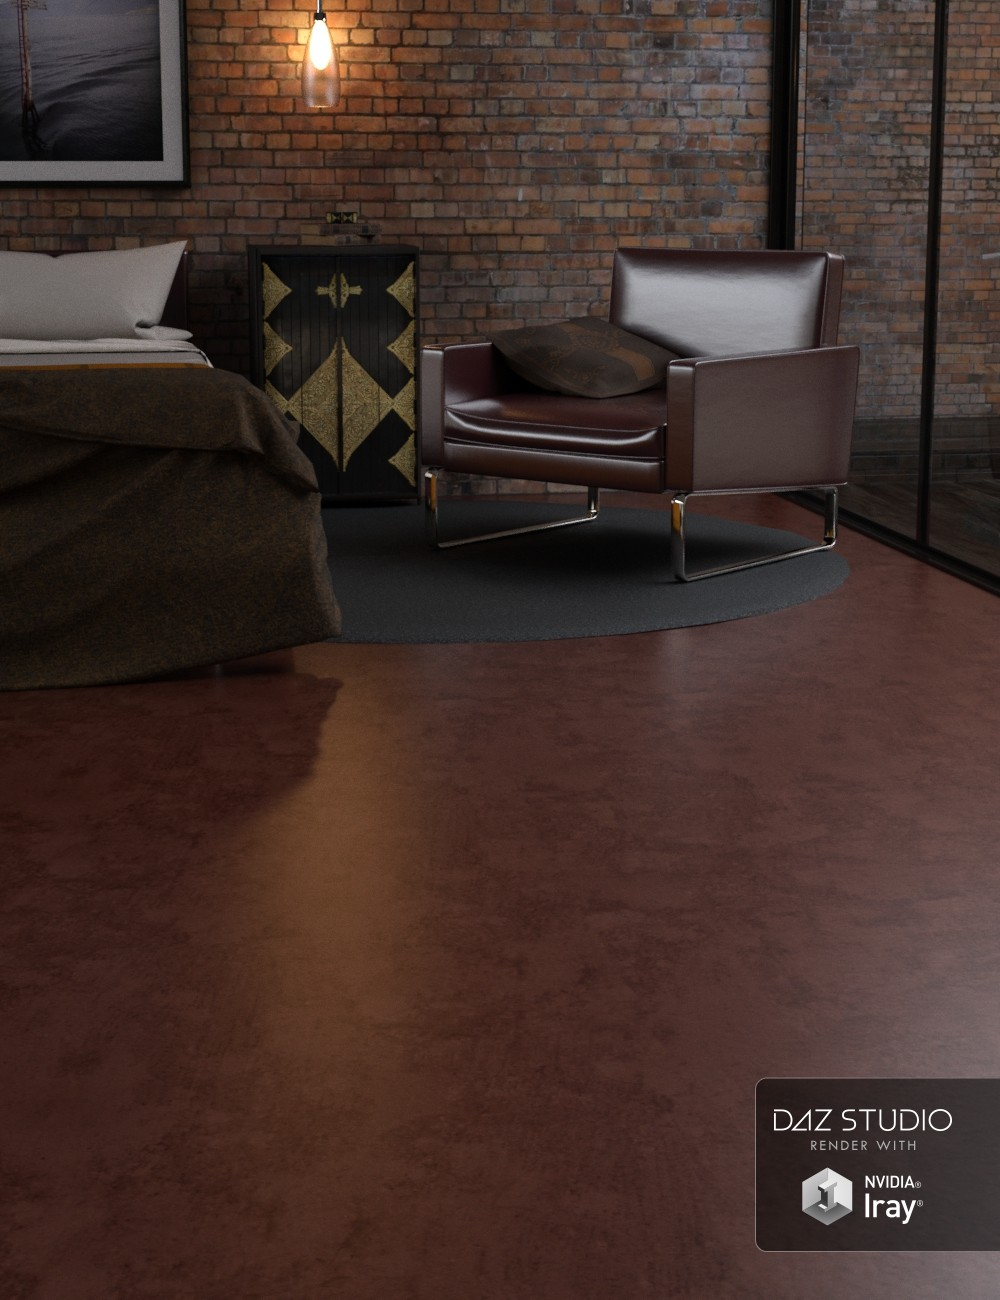 Modern Industrial Floors for Iray by: Khory, 3D Models by Daz 3D